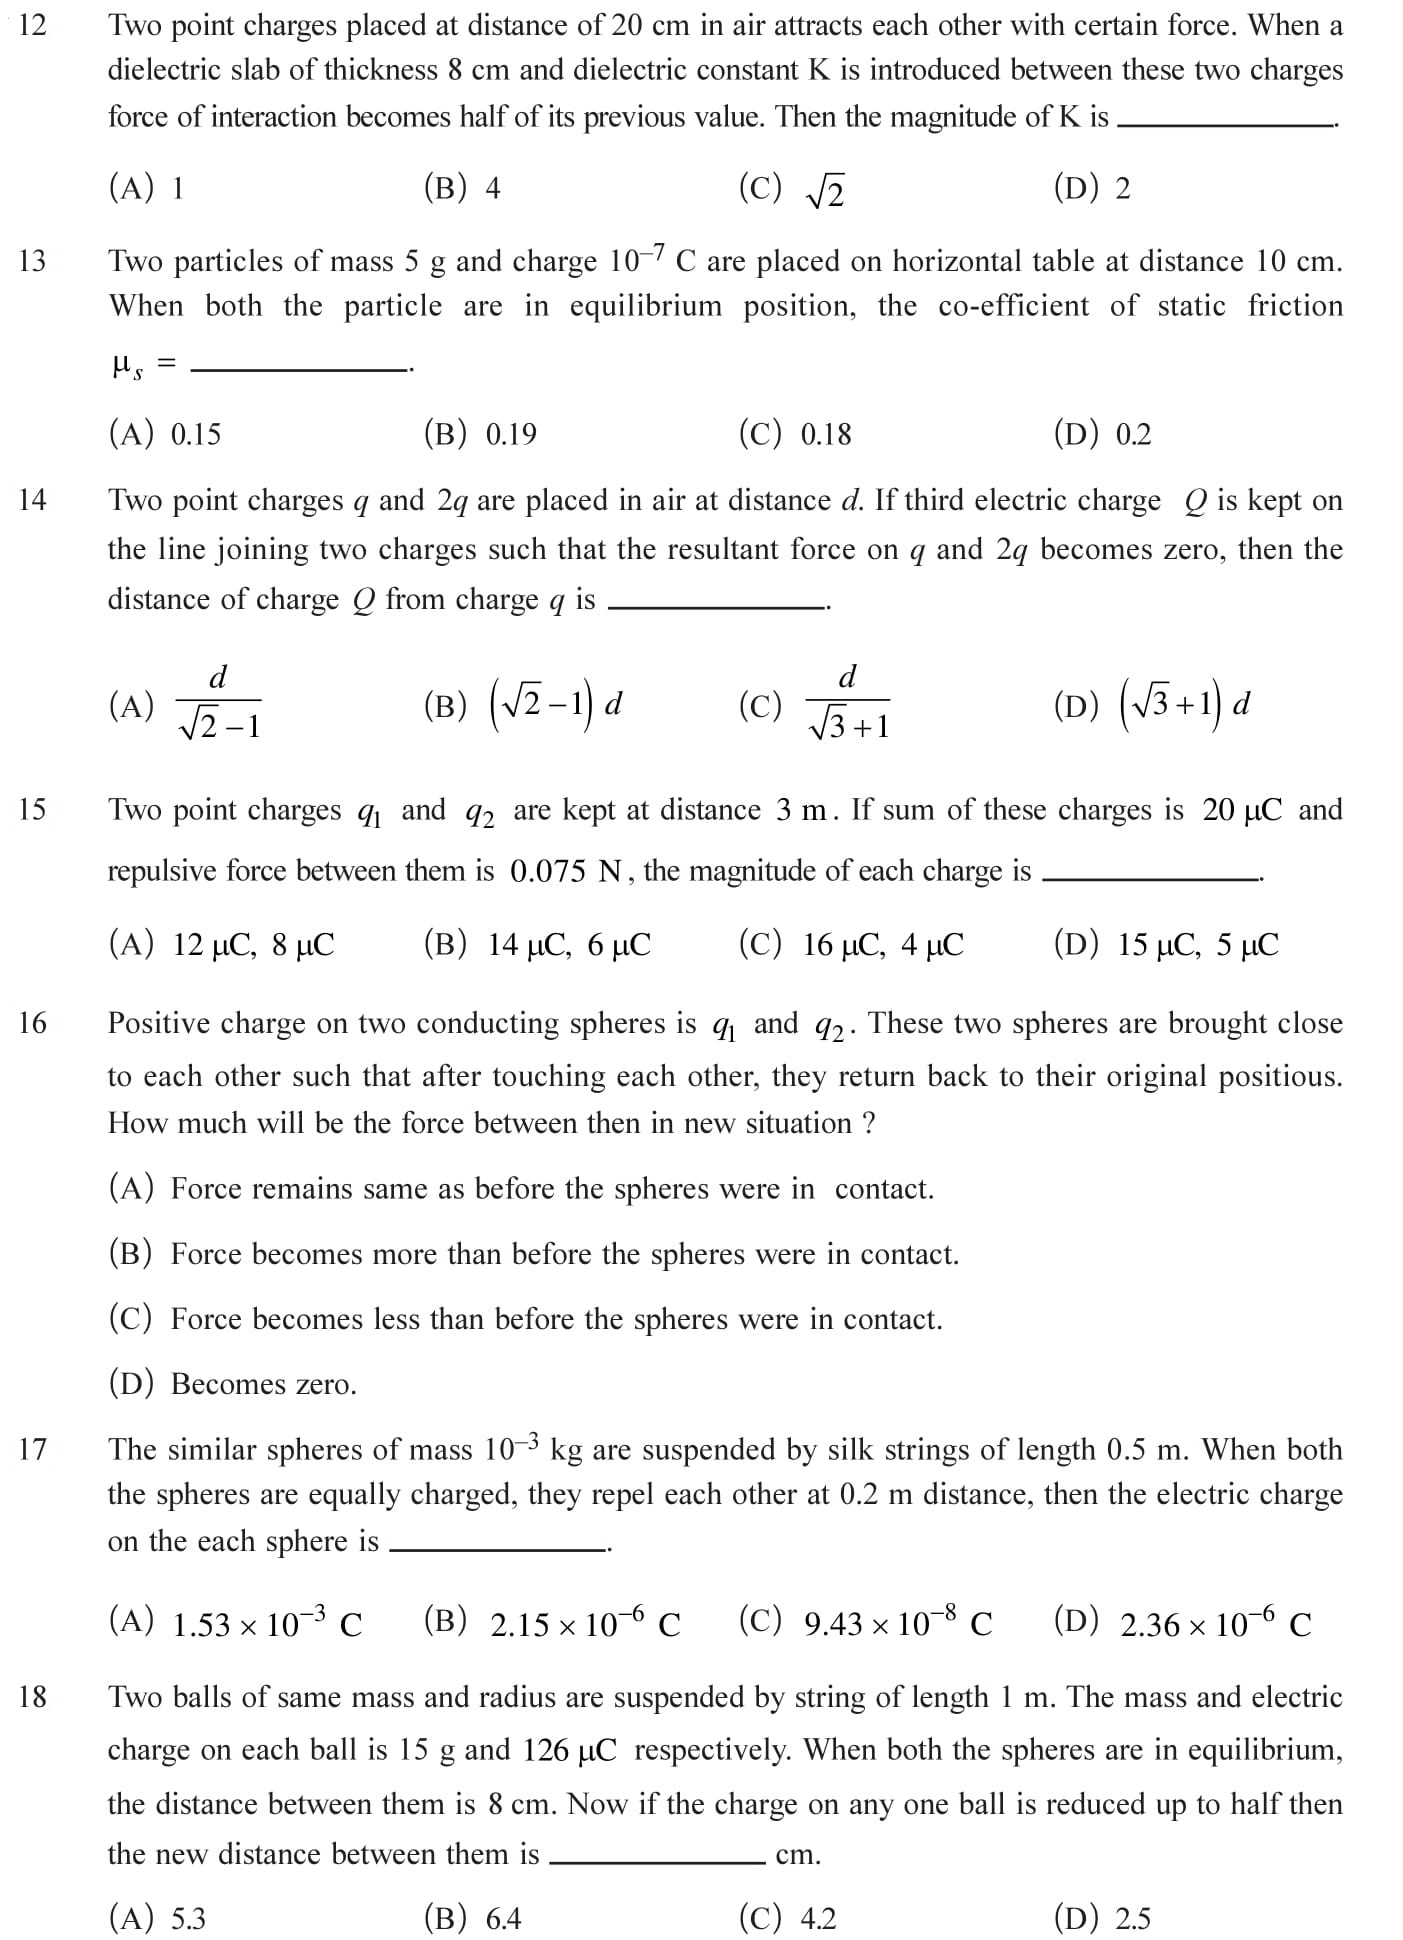 Class 12 Physics Chapter 1 NEET, JEE Mains - 4